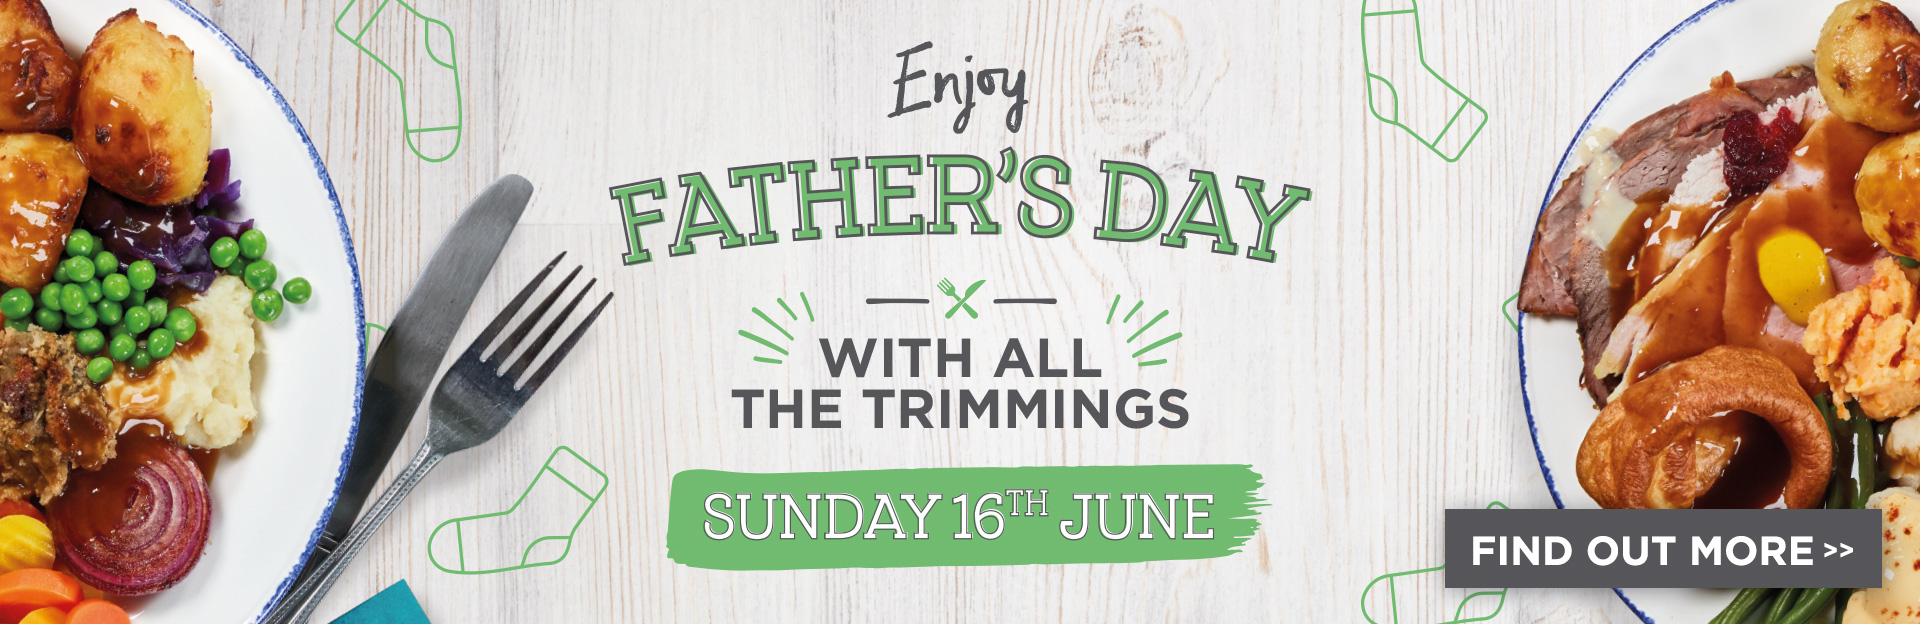 Father's Day at The Punch Tavern